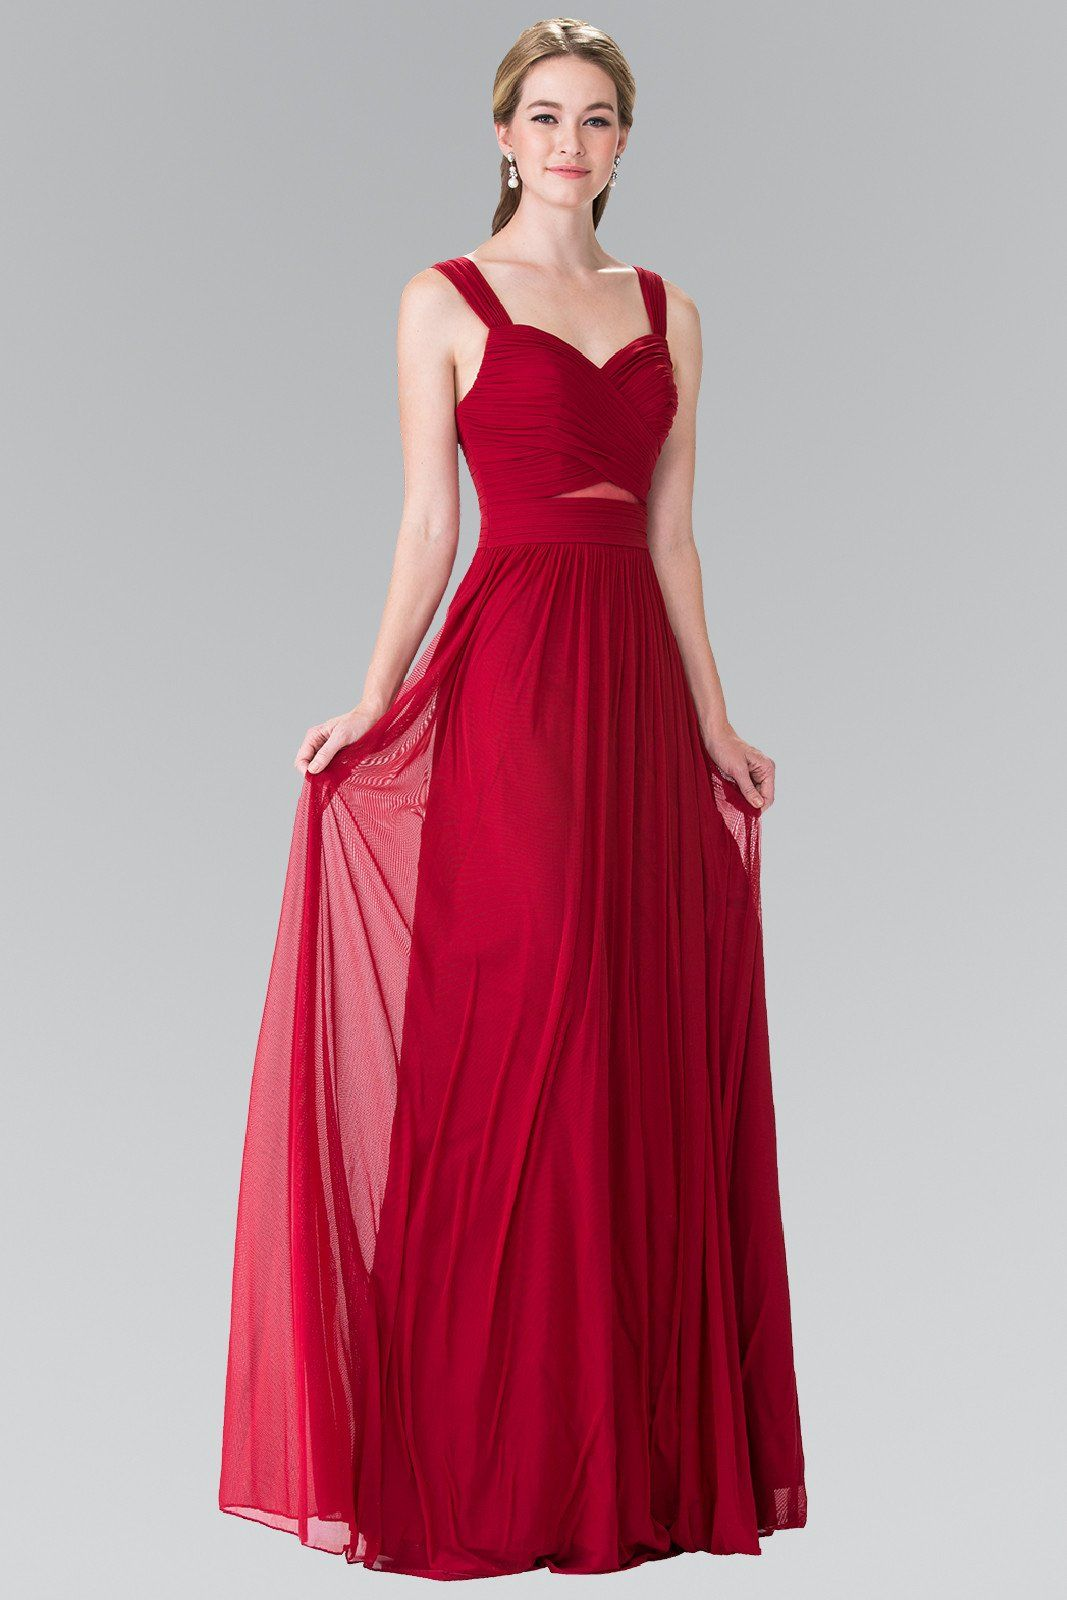 Long chiffon bridesmaid dress gl2366 simply fab dress elegant long chiffon bridesmaid dress gl2366 simply fab dress ombrellifo Choice Image